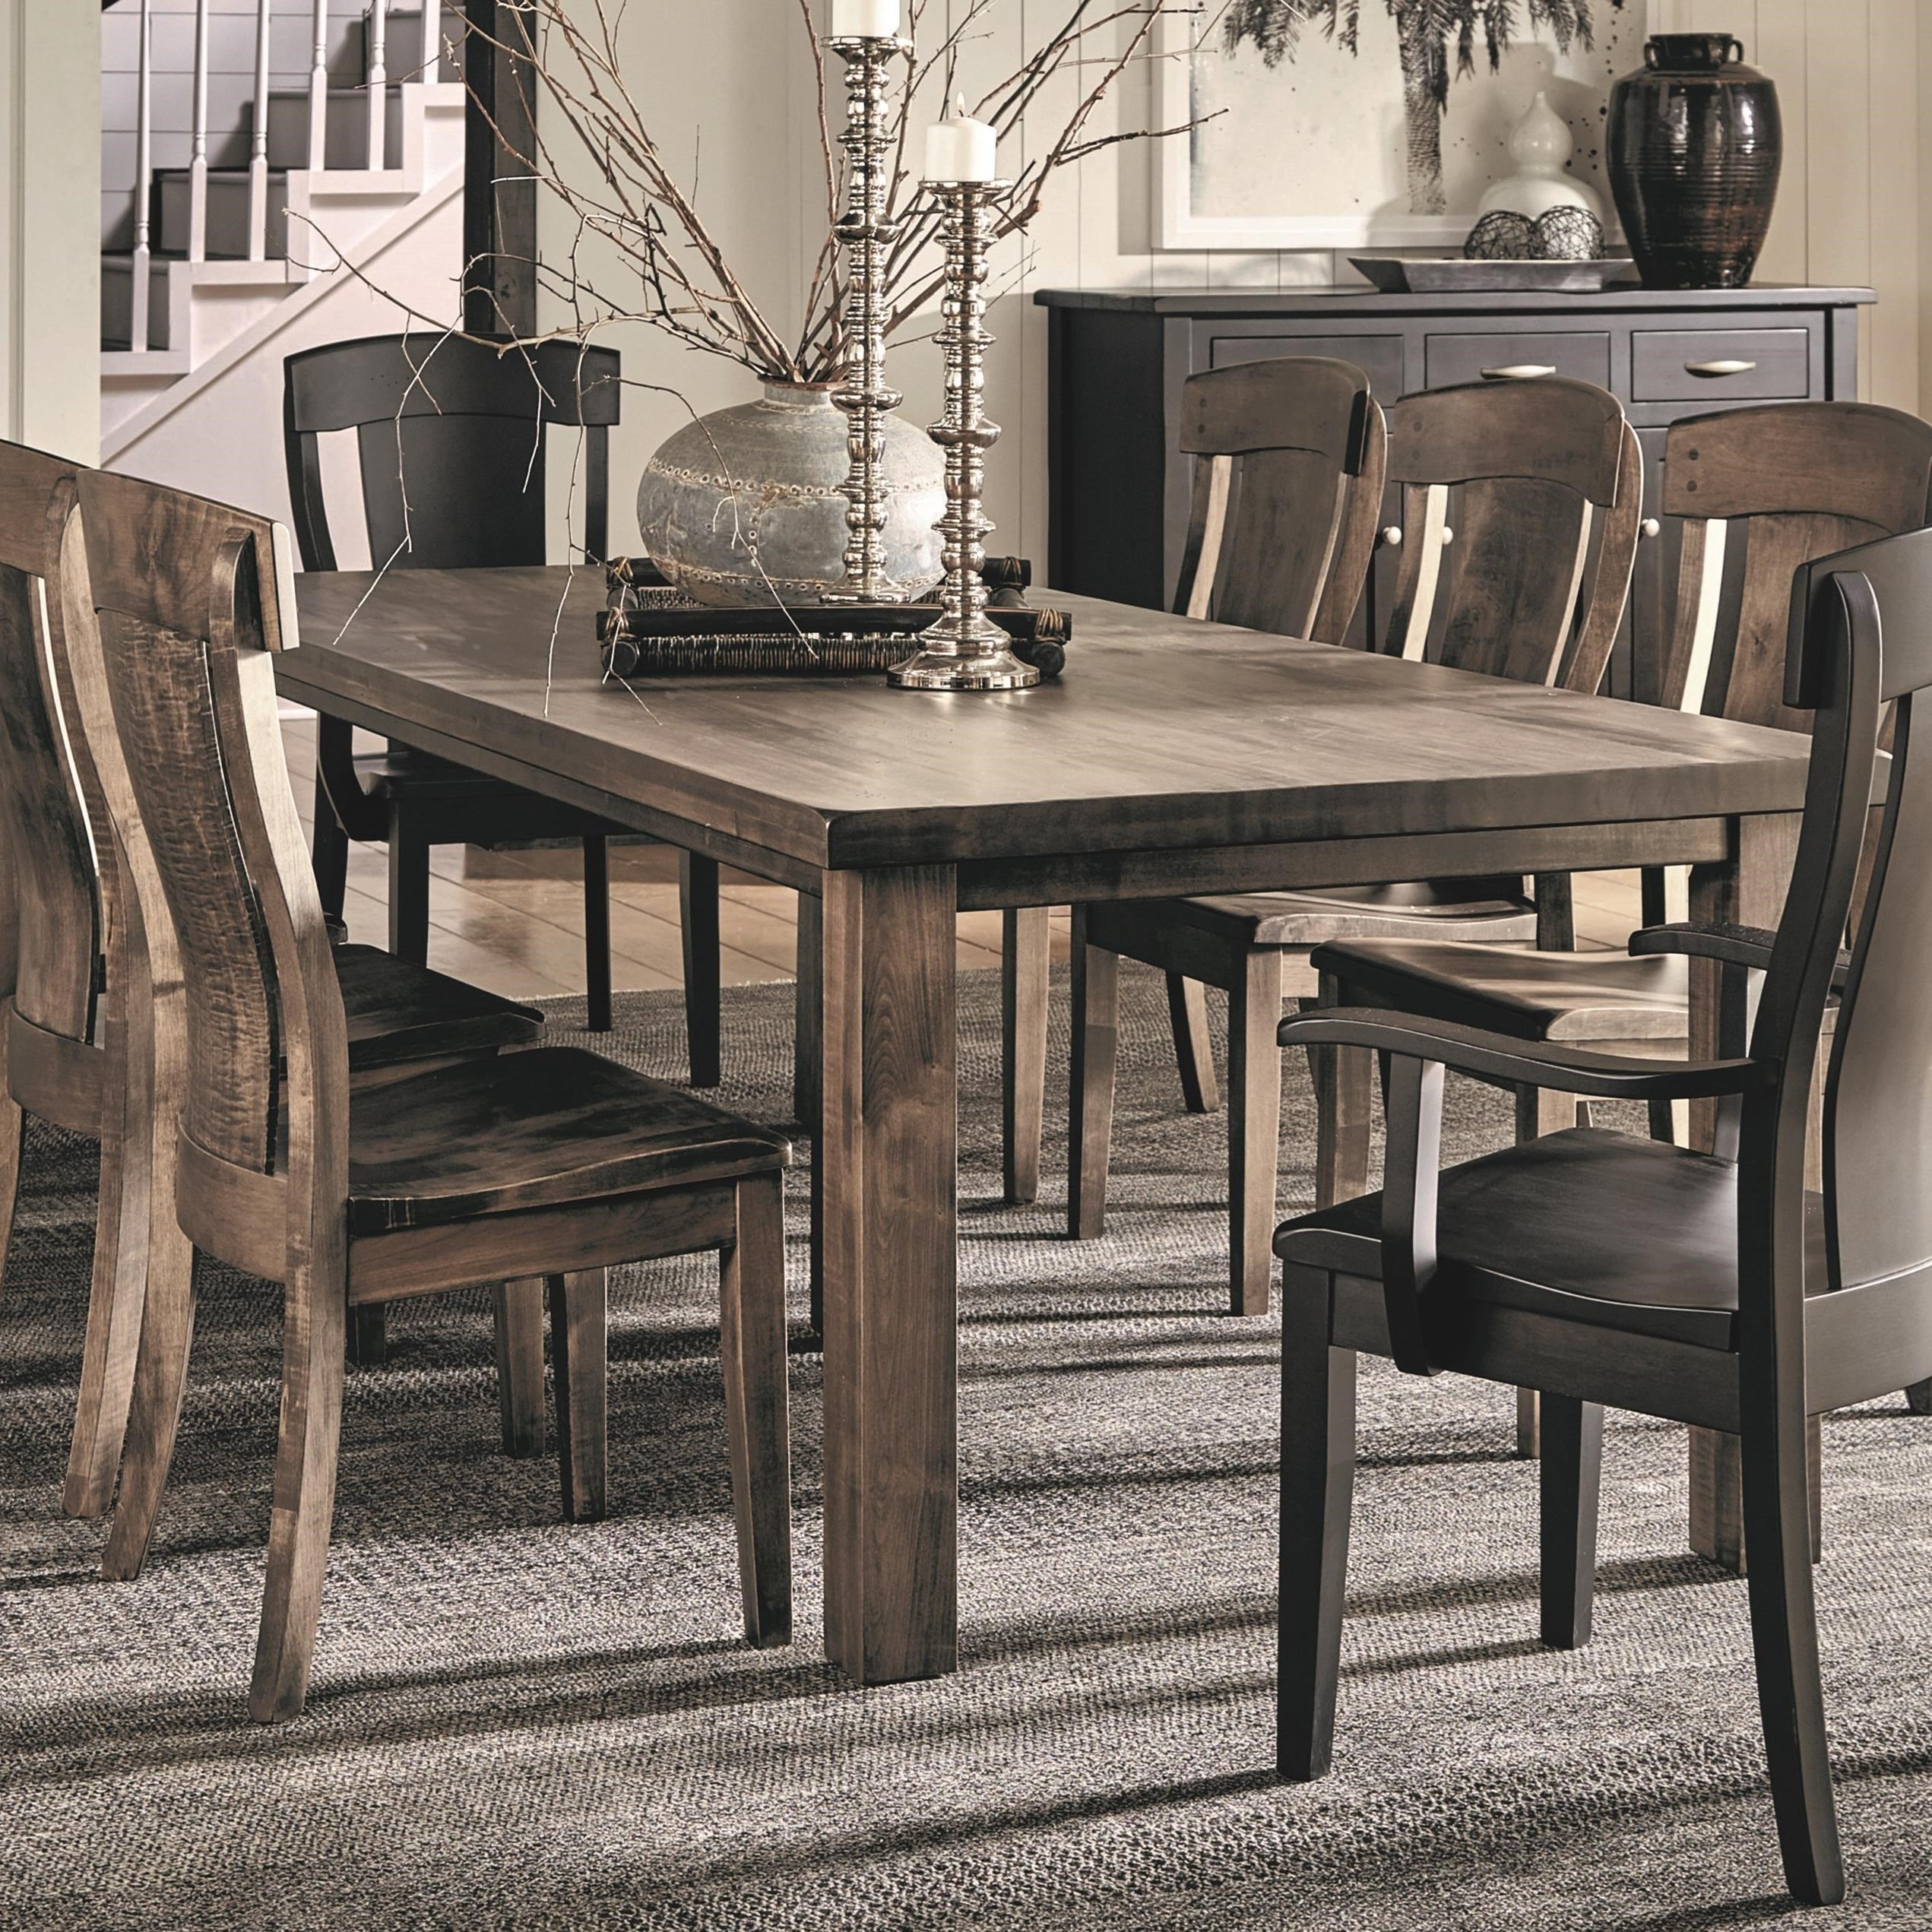 Eastchester Dining Table by Daniel's Amish at Fashion Furniture